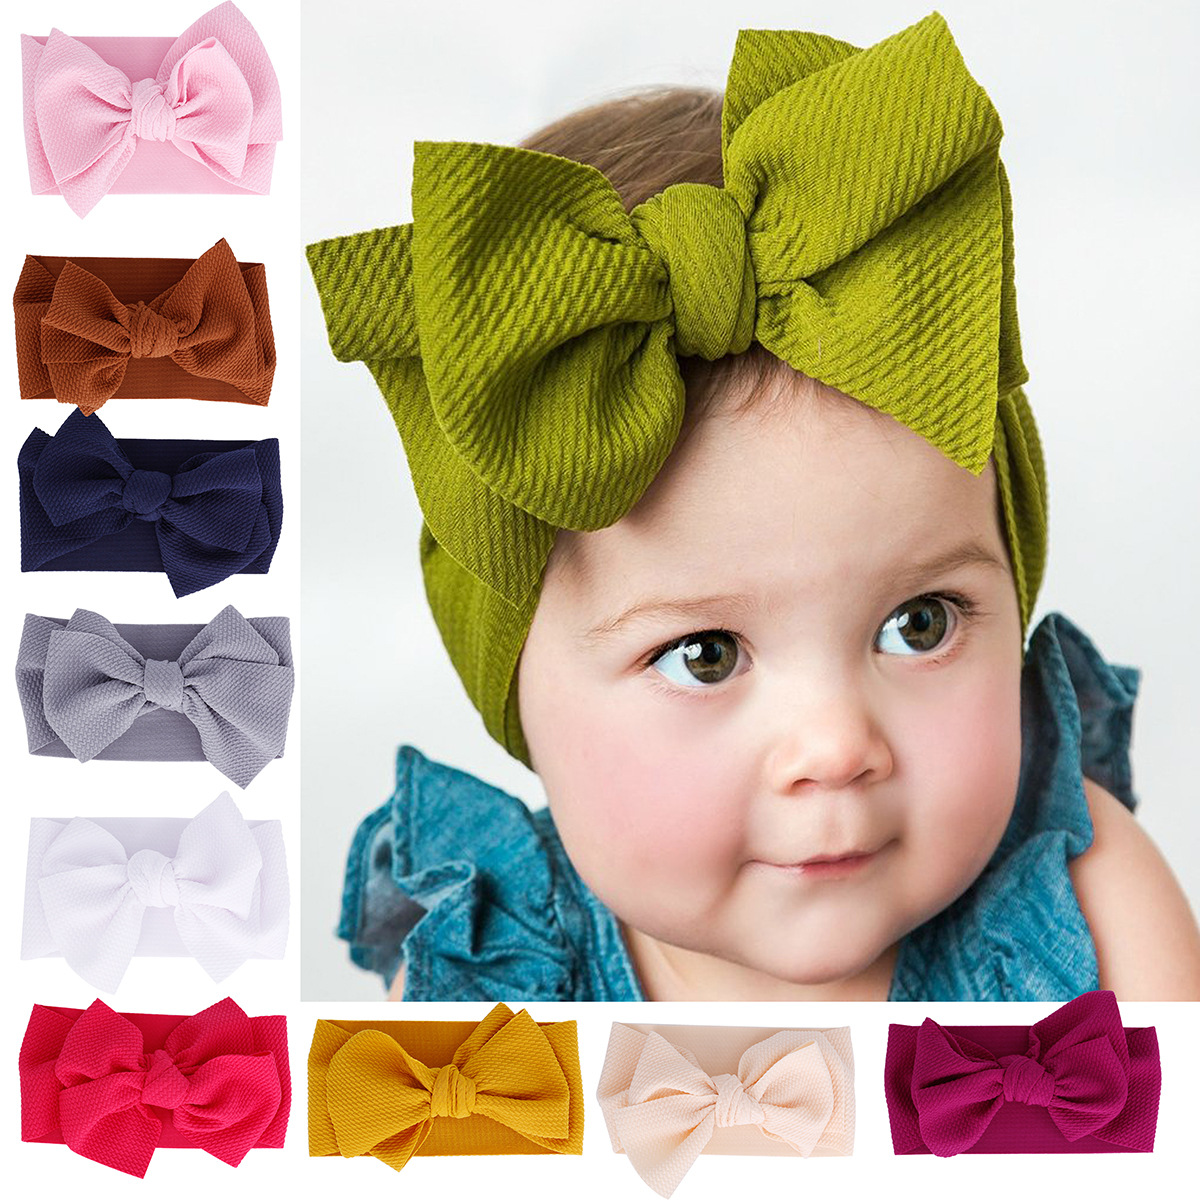 Baby Kid Girl Flower Hair Headband Toddler Lace Bow Band Accessories Headwear